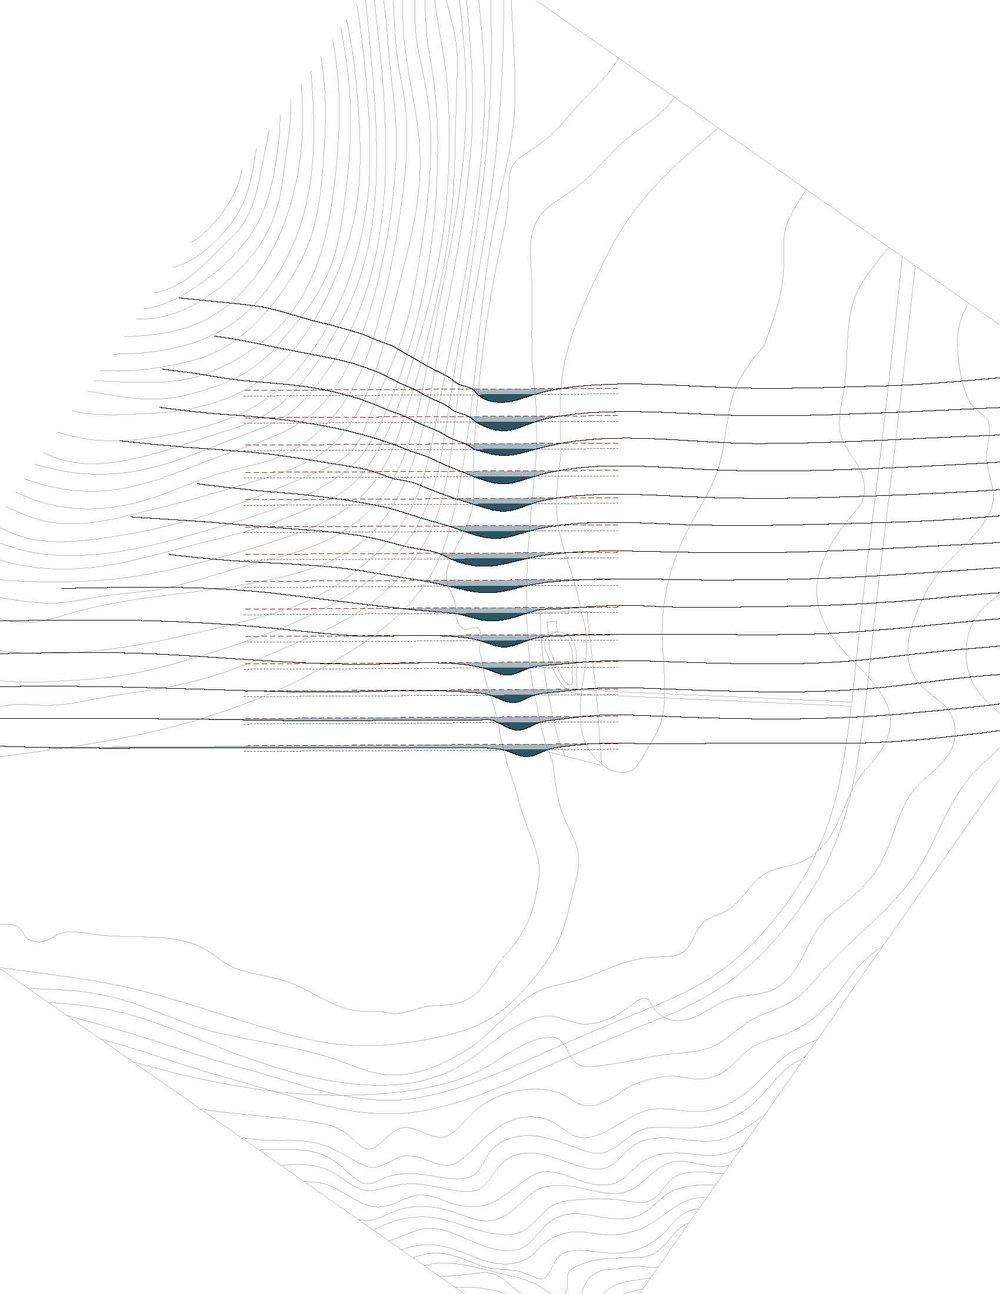 topo_cad_sections with water.jpg